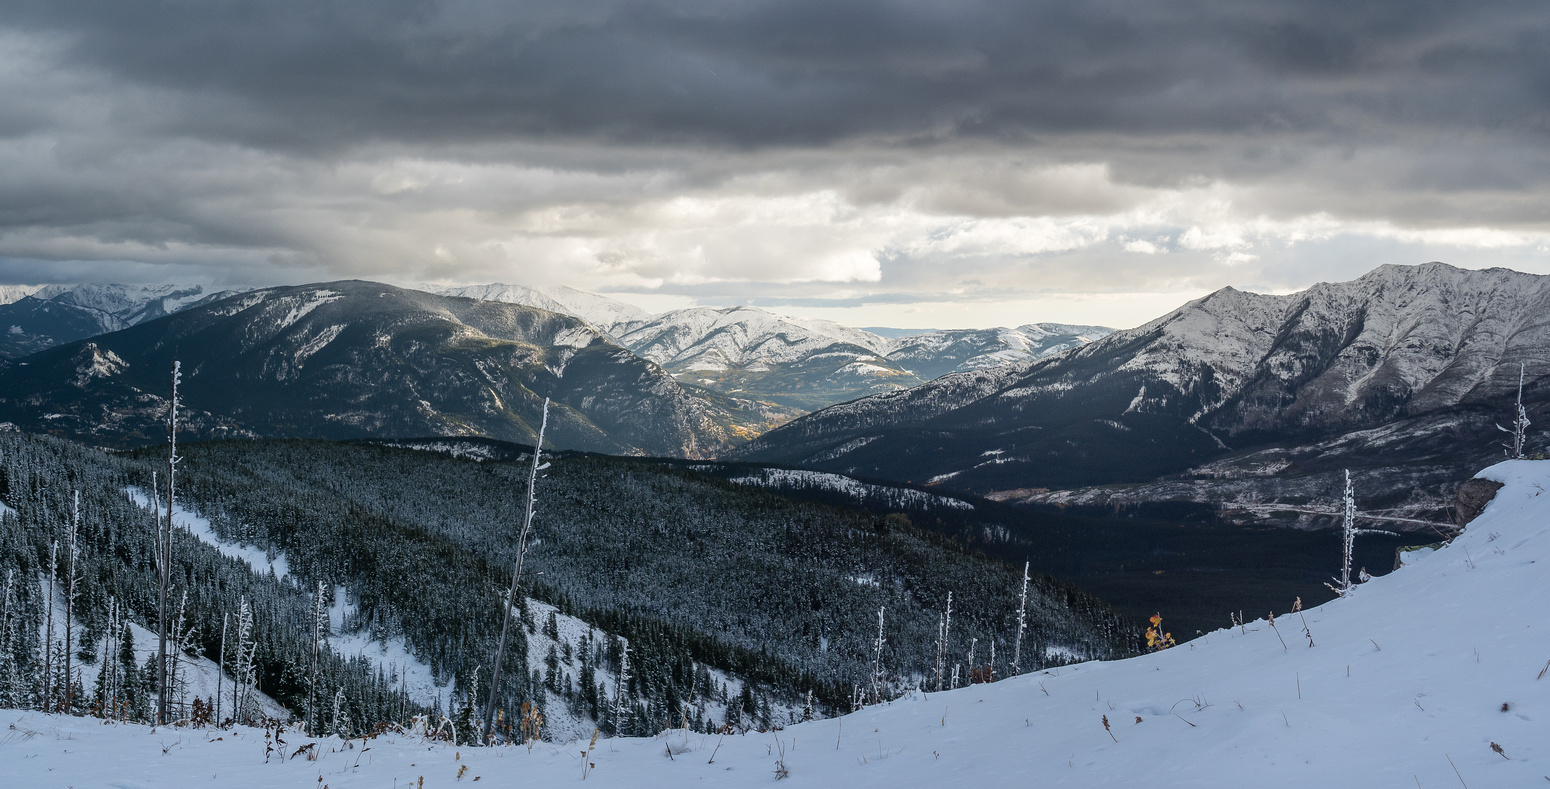 The storm clouds are building in this nice view towards the front ranges - Turtle Mountain at right and Bluff Mountain at left.